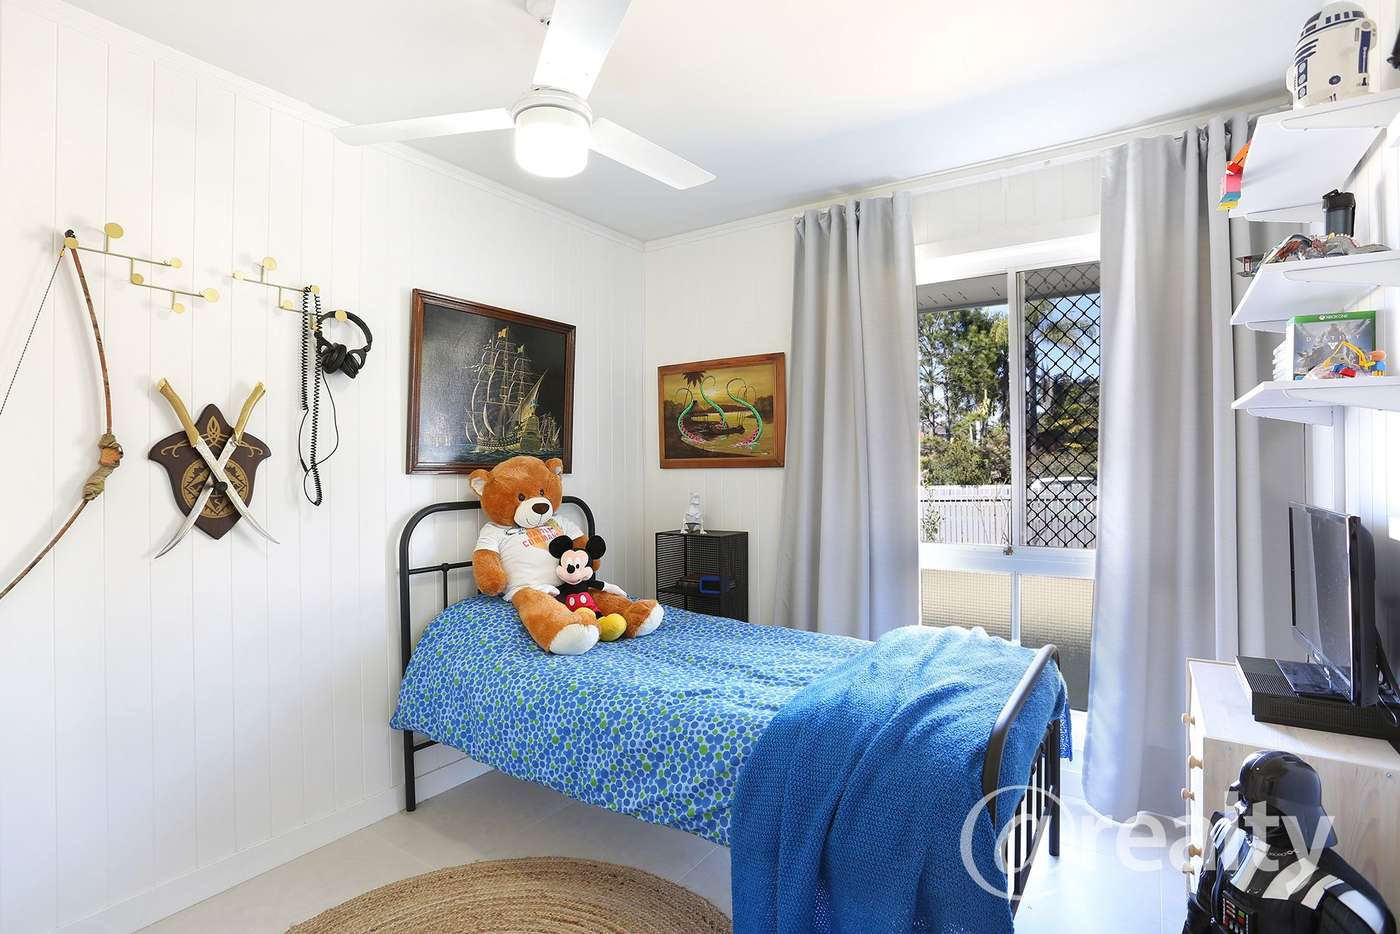 Sixth view of Homely house listing, 9 Miskin Street, Nerang QLD 4211